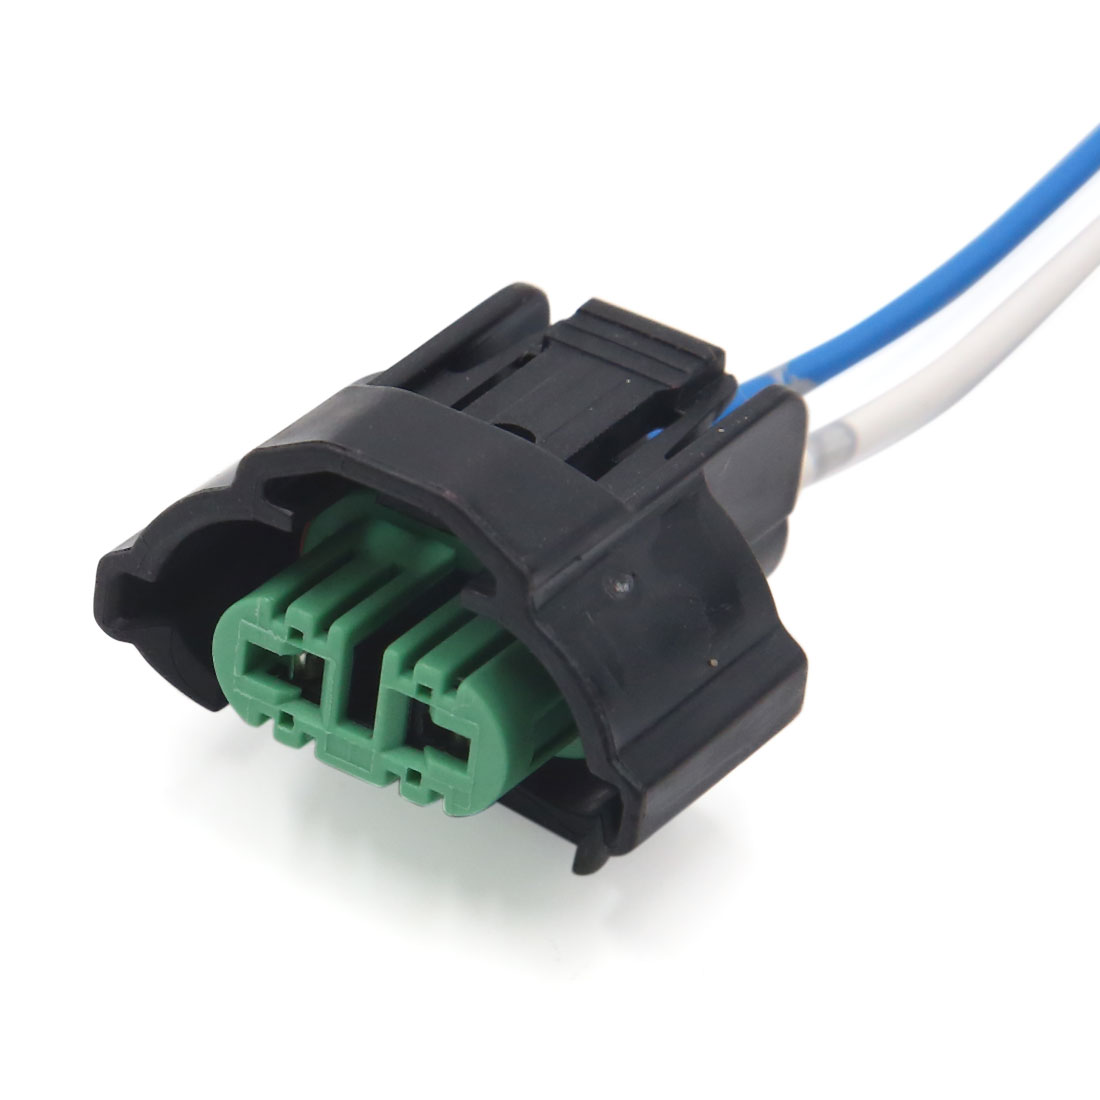 small resolution of h11 bulb 2 wire car driving light headlamp wired harness socket connector